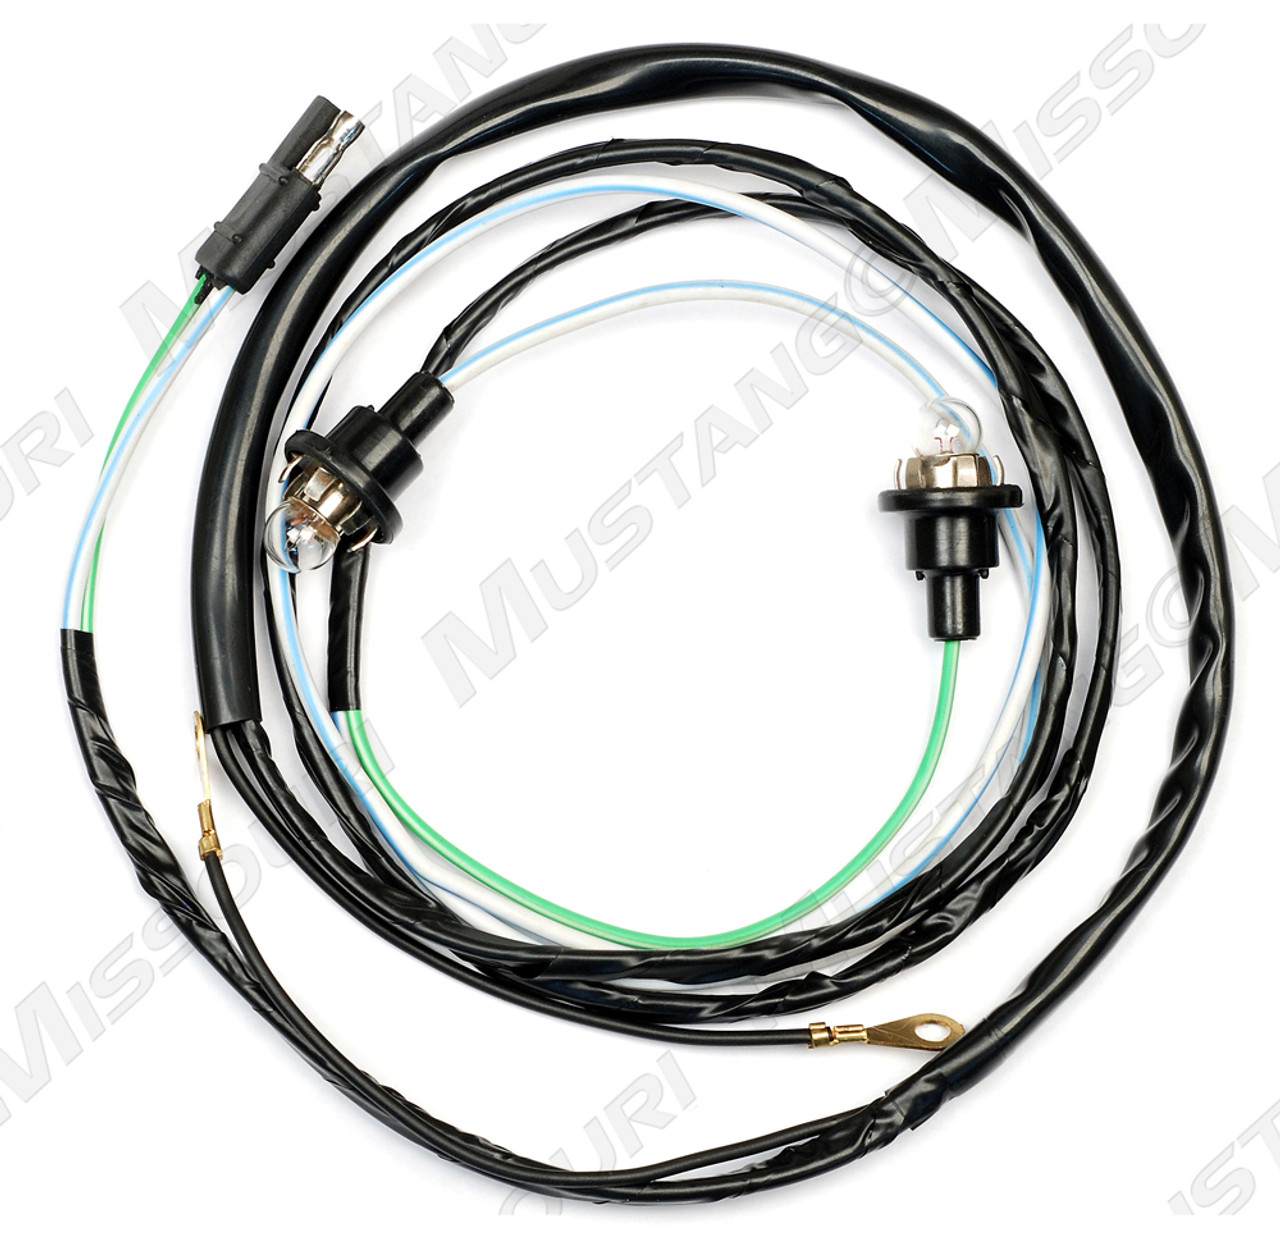 hight resolution of 1967 1968 ford mustang hood turn signal wiring harness